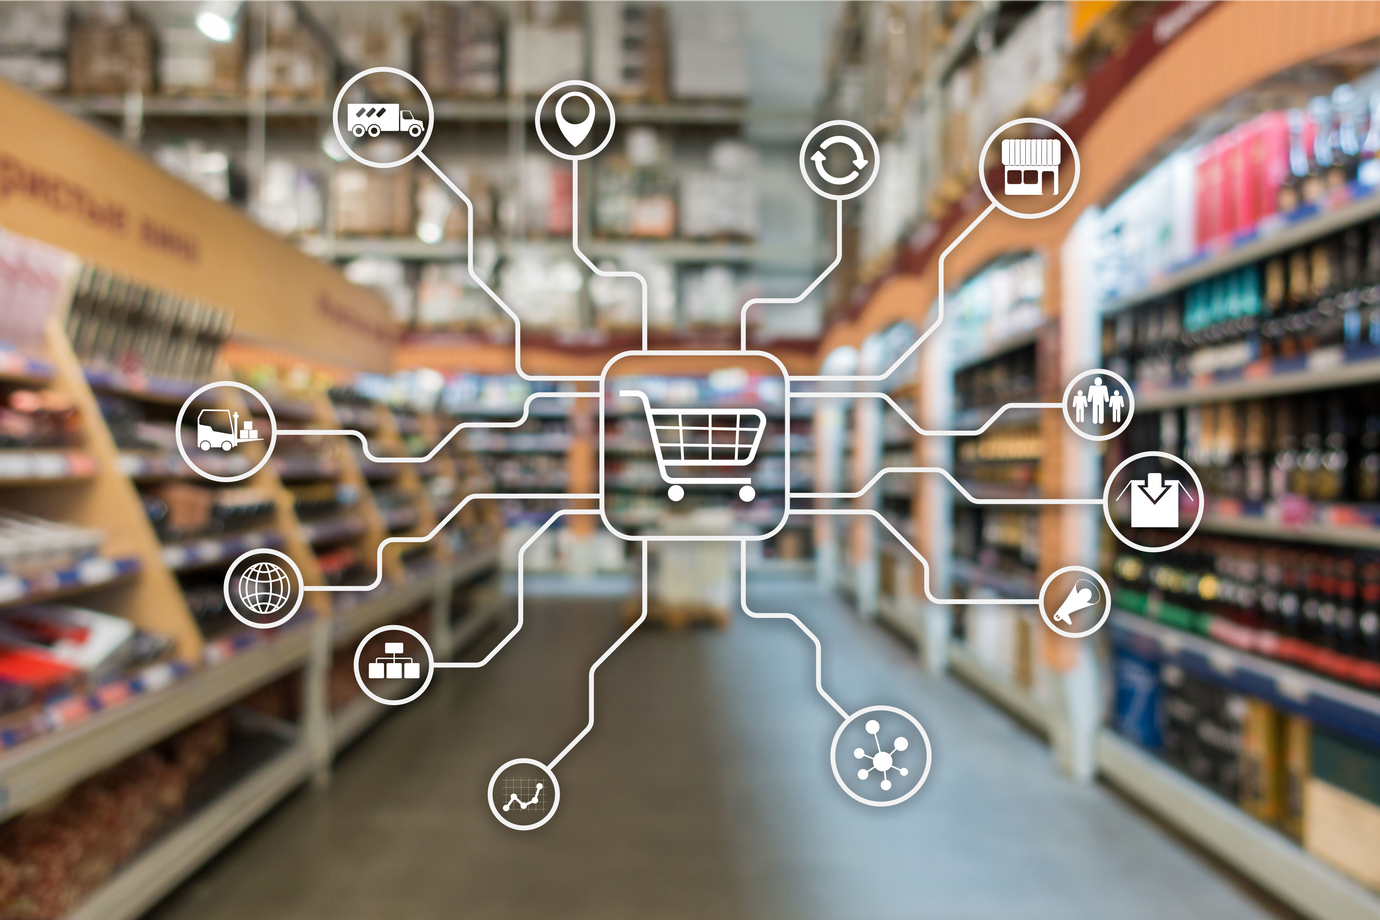 How Do Grocery Stores Keep Track of Inventory?